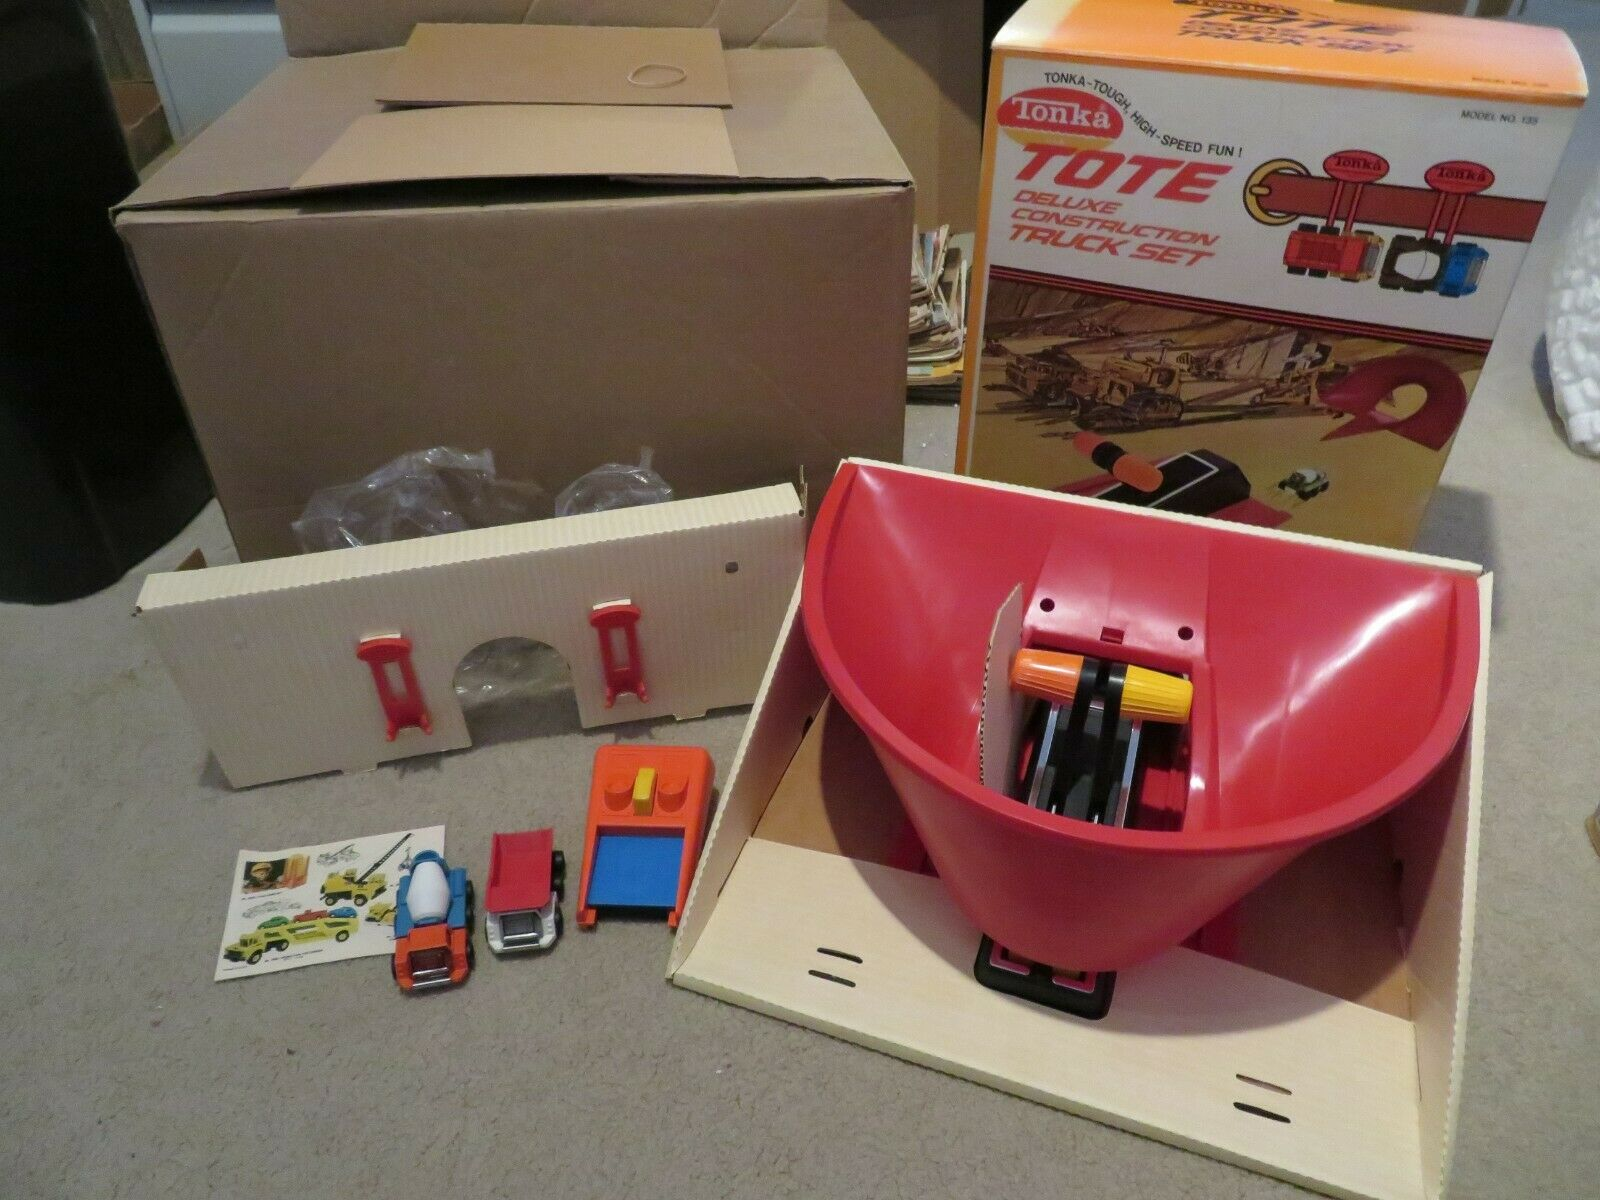 TONKA Tote Deluxe Construction Set  135 COMPLET Comme neuf IN BOX avec 2 Camions